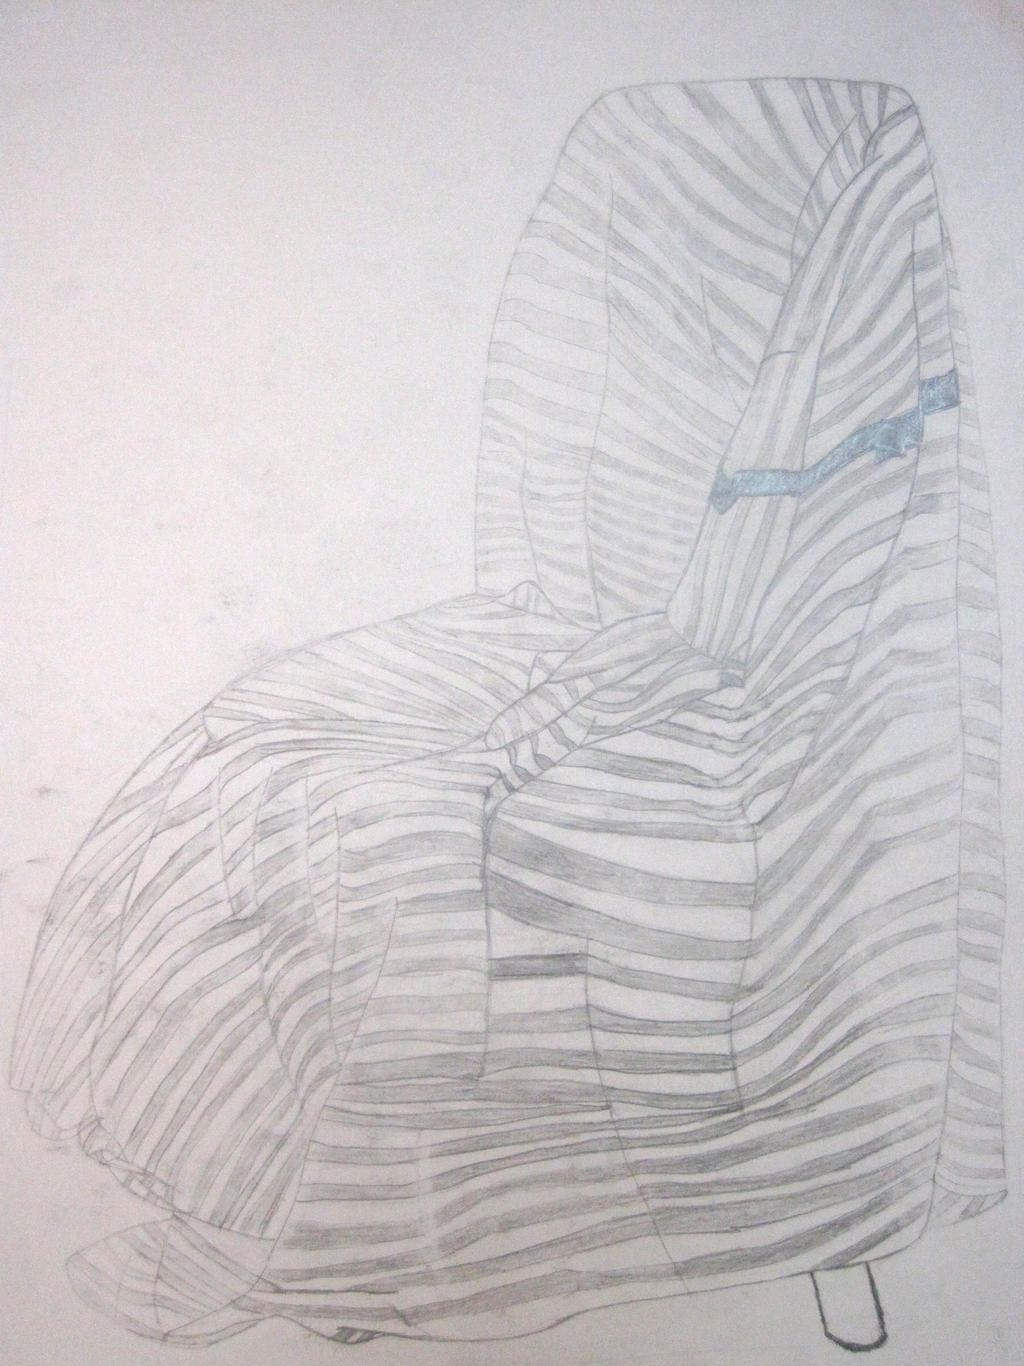 Contour Line Drawing Software : Contour lines chair by somesingman on deviantart